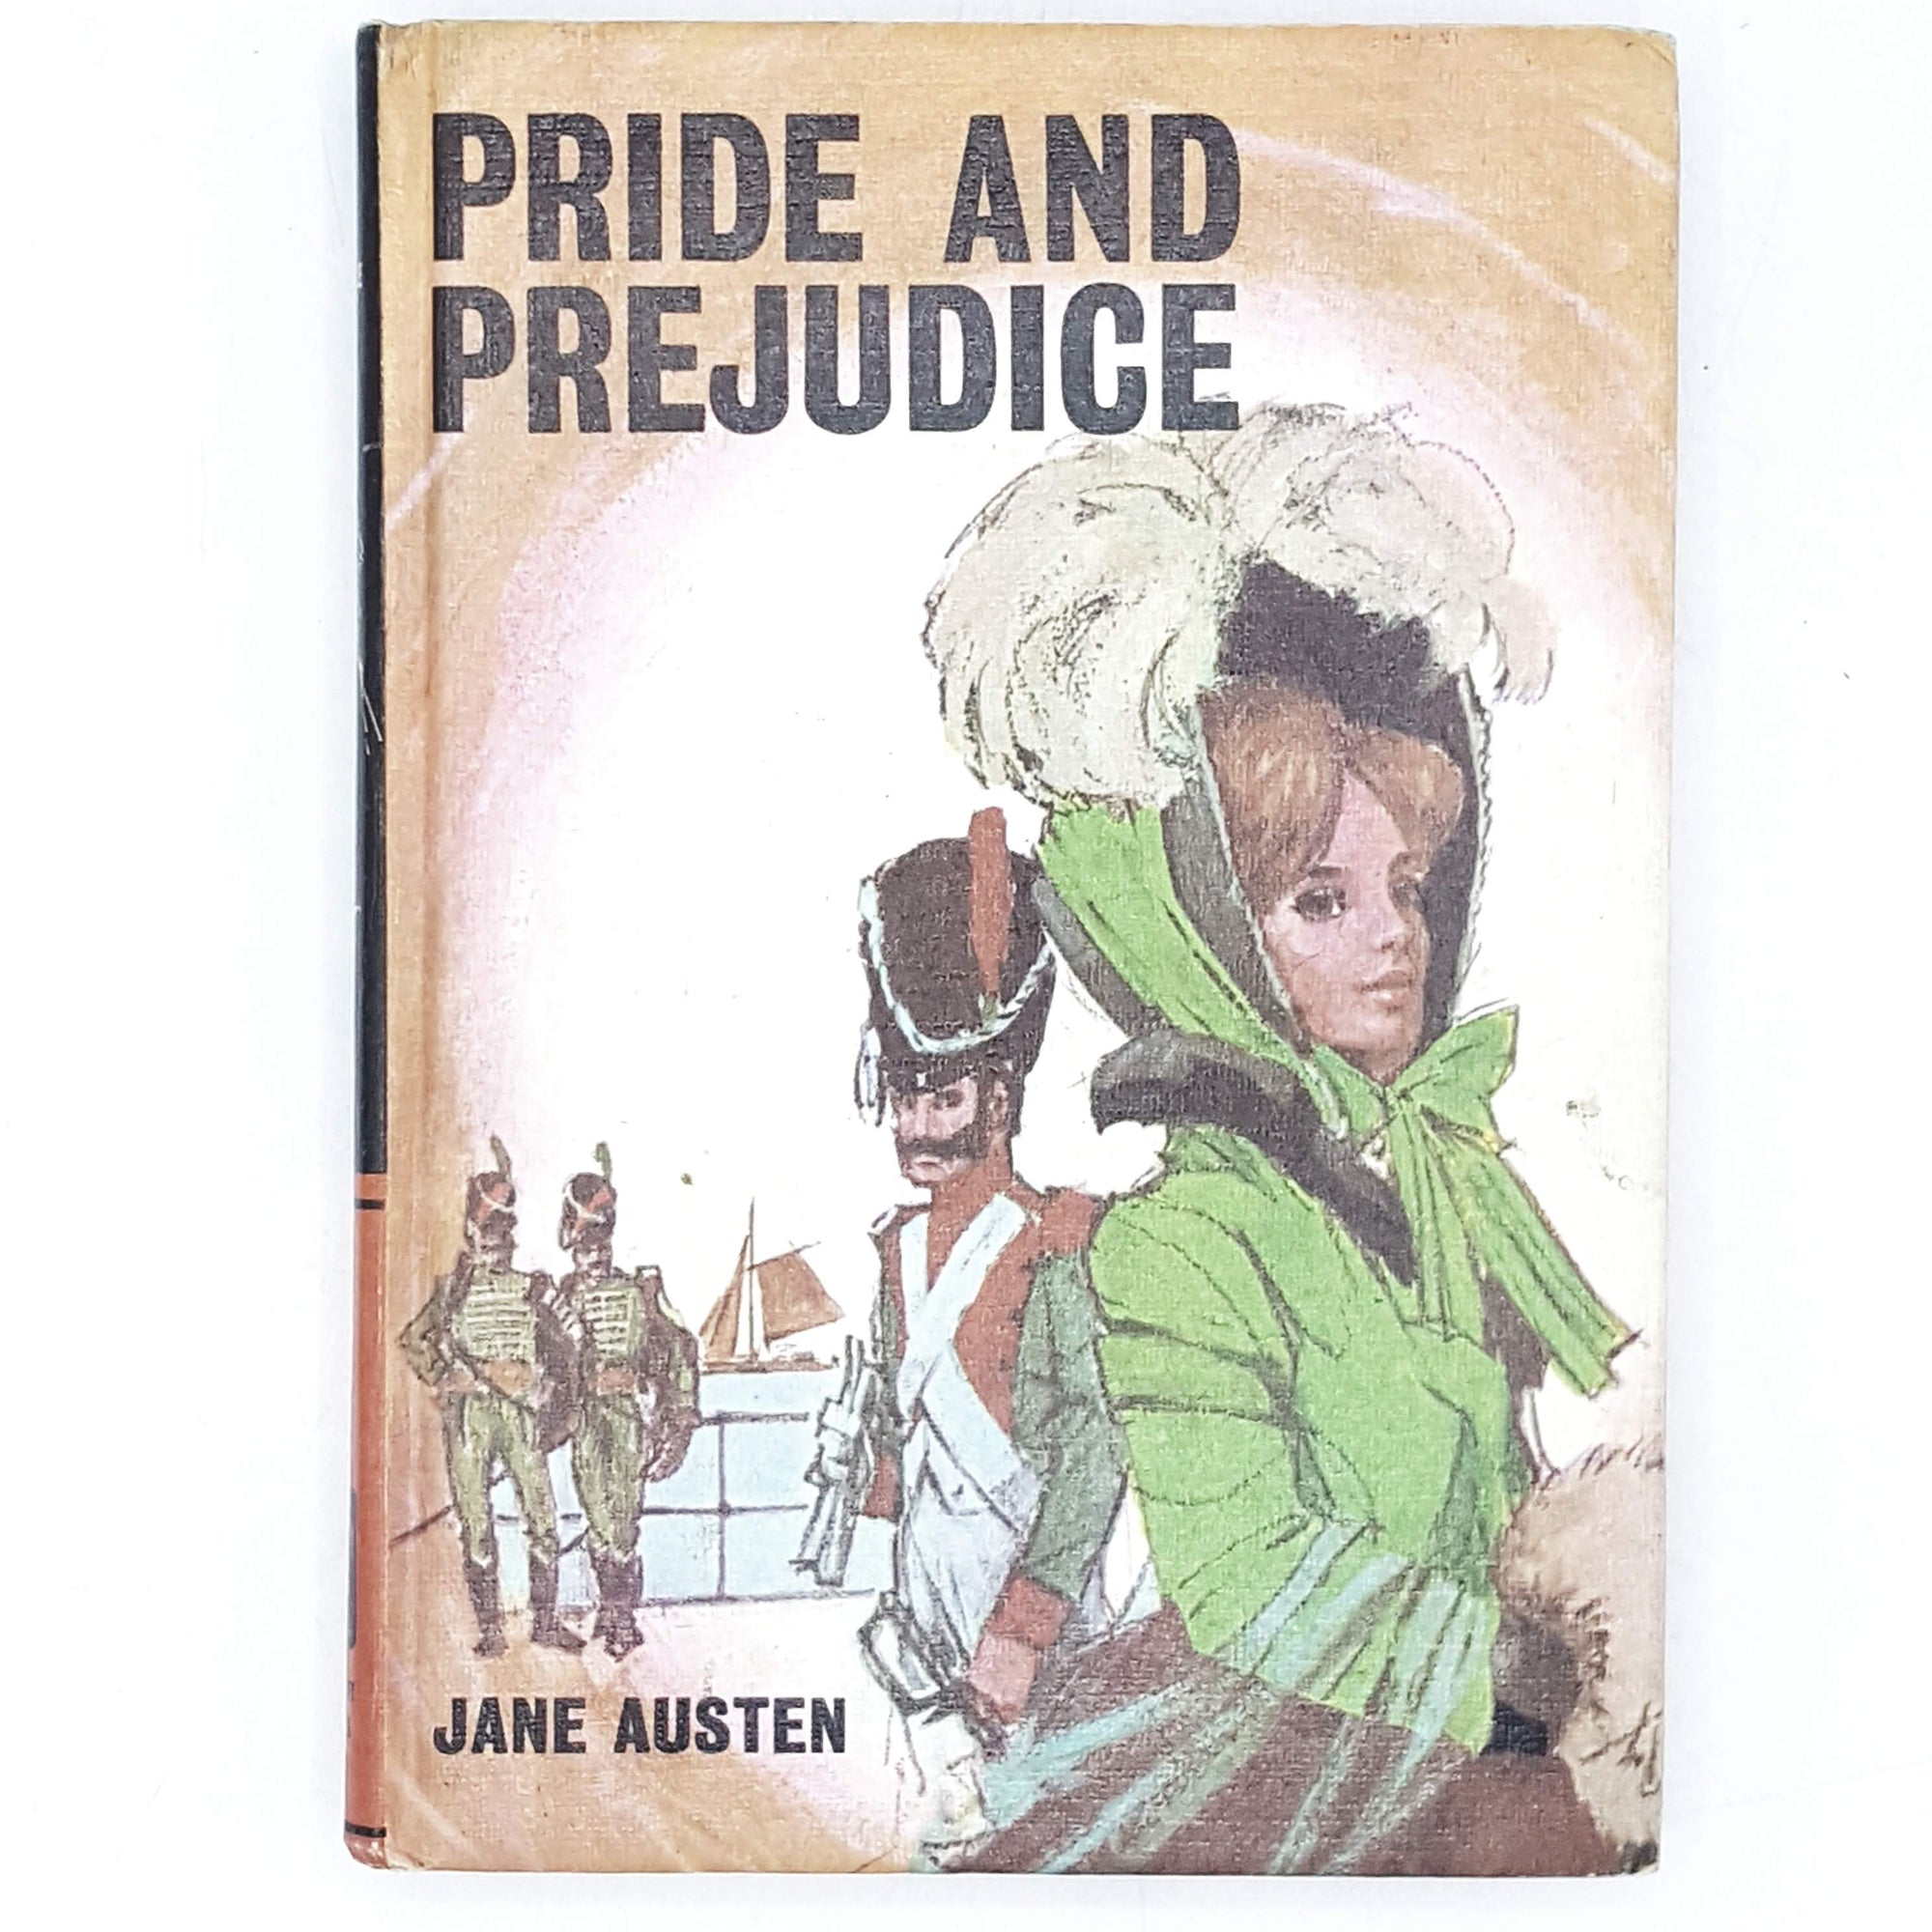 Jane Austen's Pride and Prejudice Bancroft